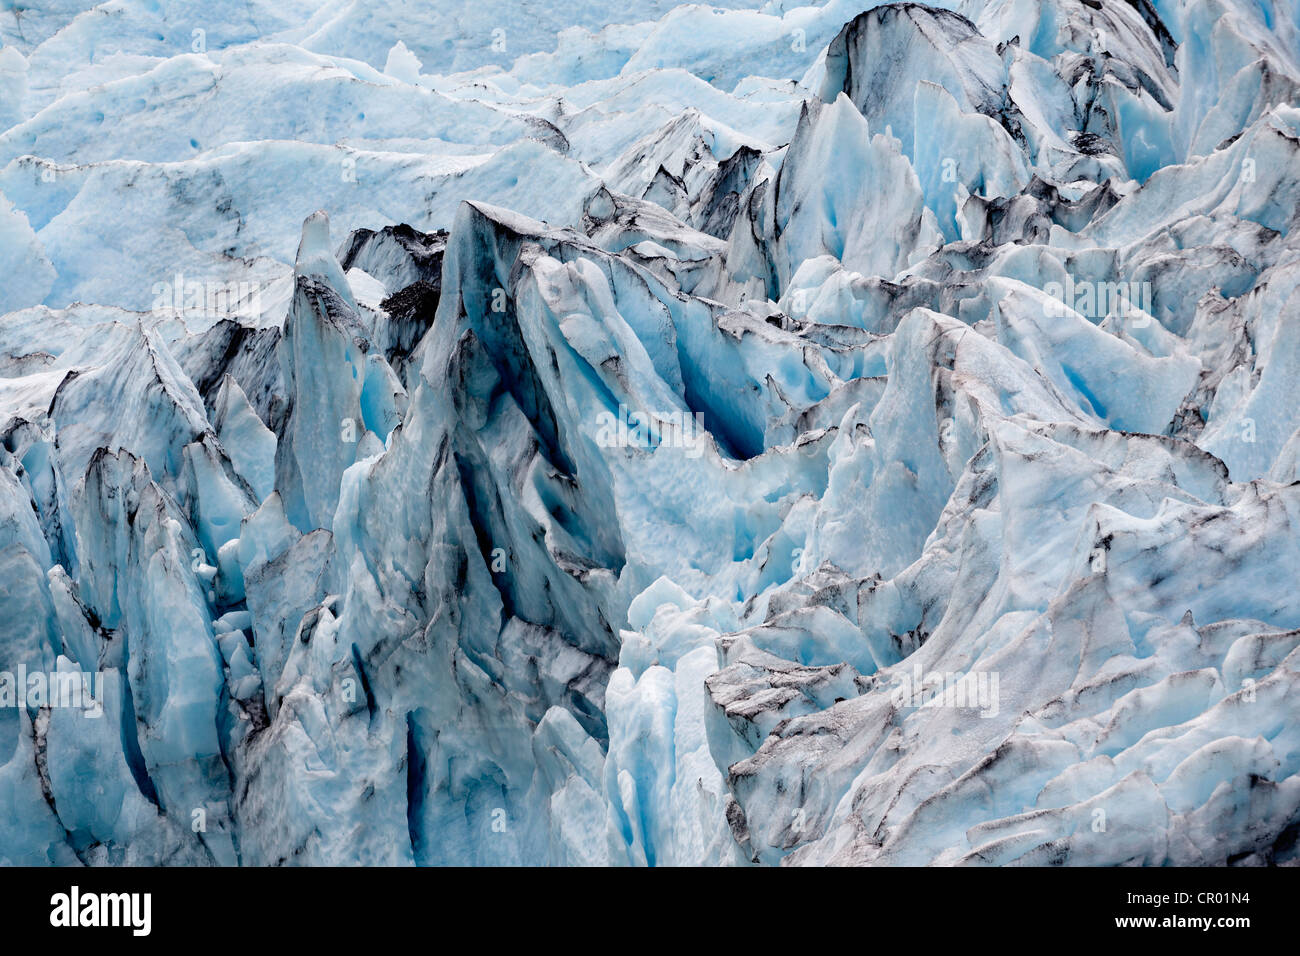 Portage Glacier in the Chugach Mountains, Kenai Peninsula near Anchorage, Alaska, USA - Stock Image